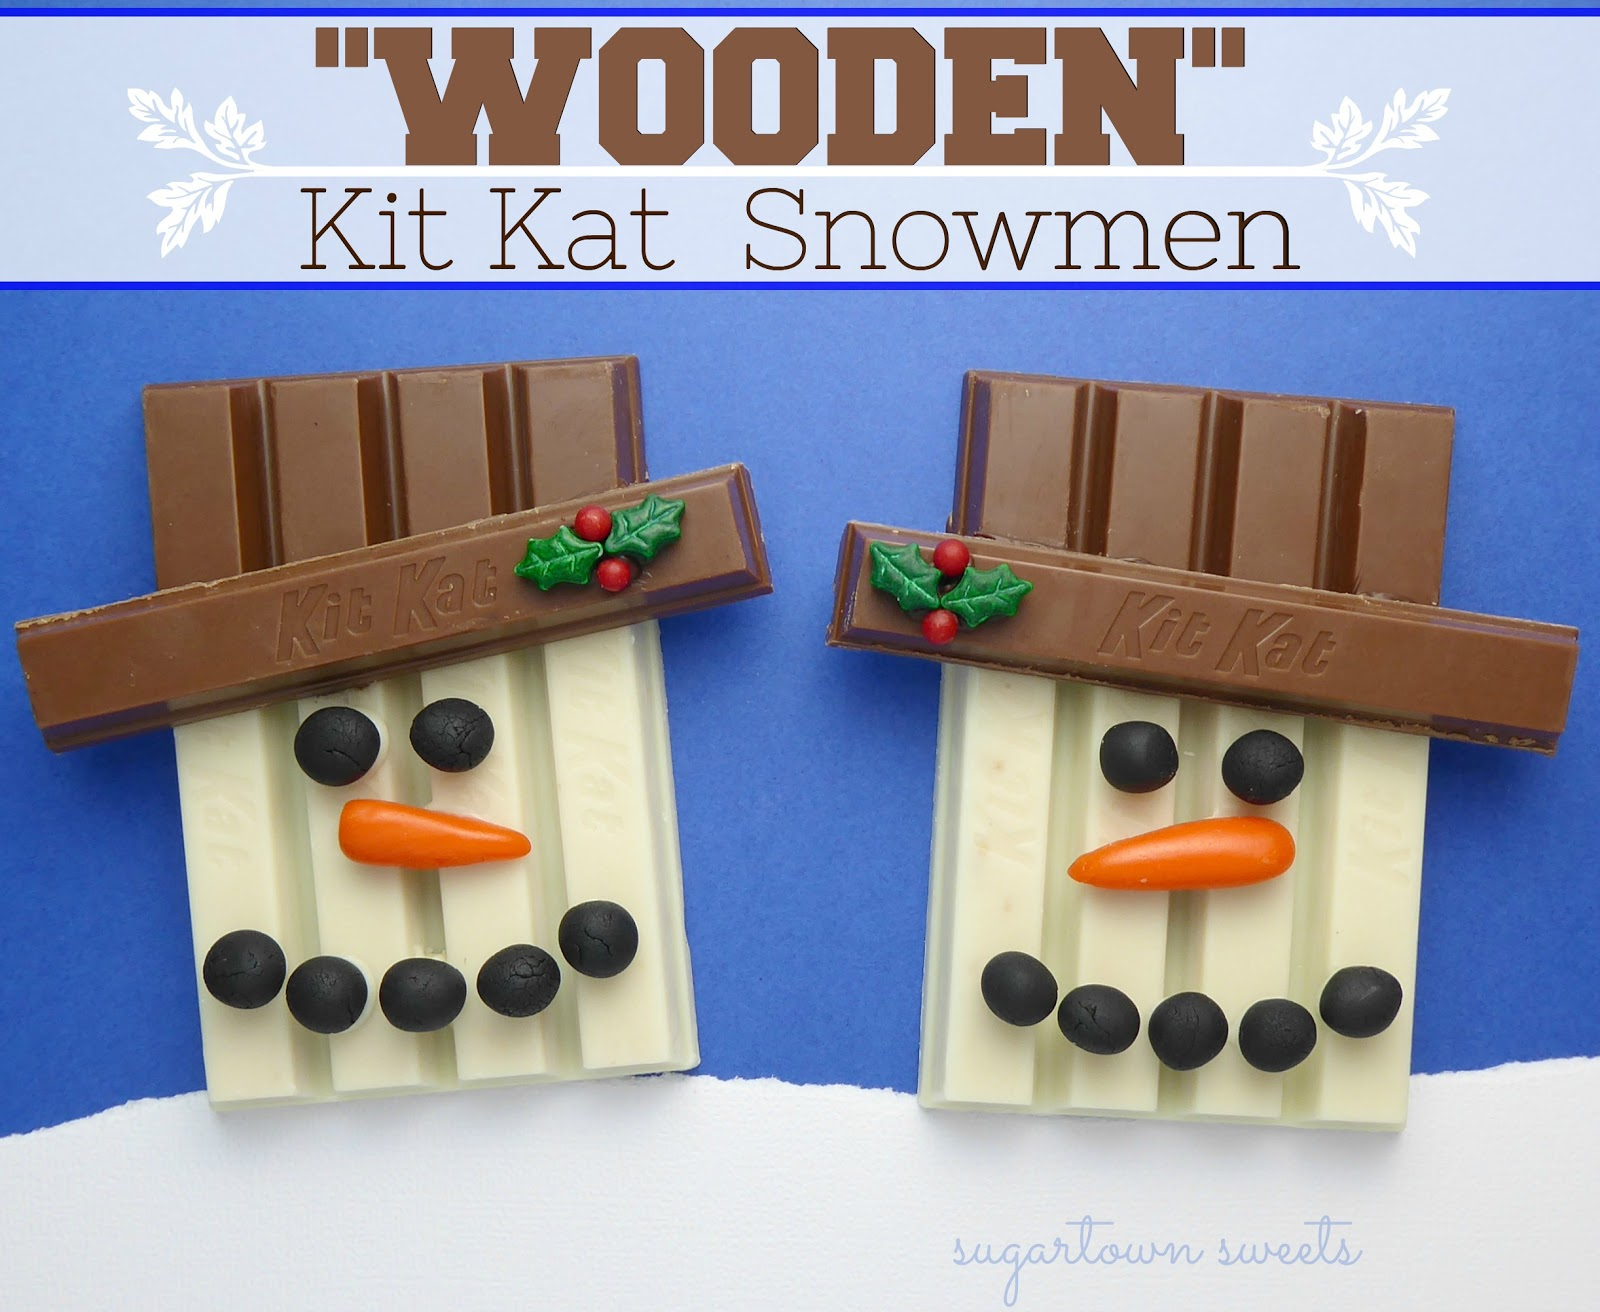 Sugartown Sweets Wood Pallet Kit Kat Snowmen Craft